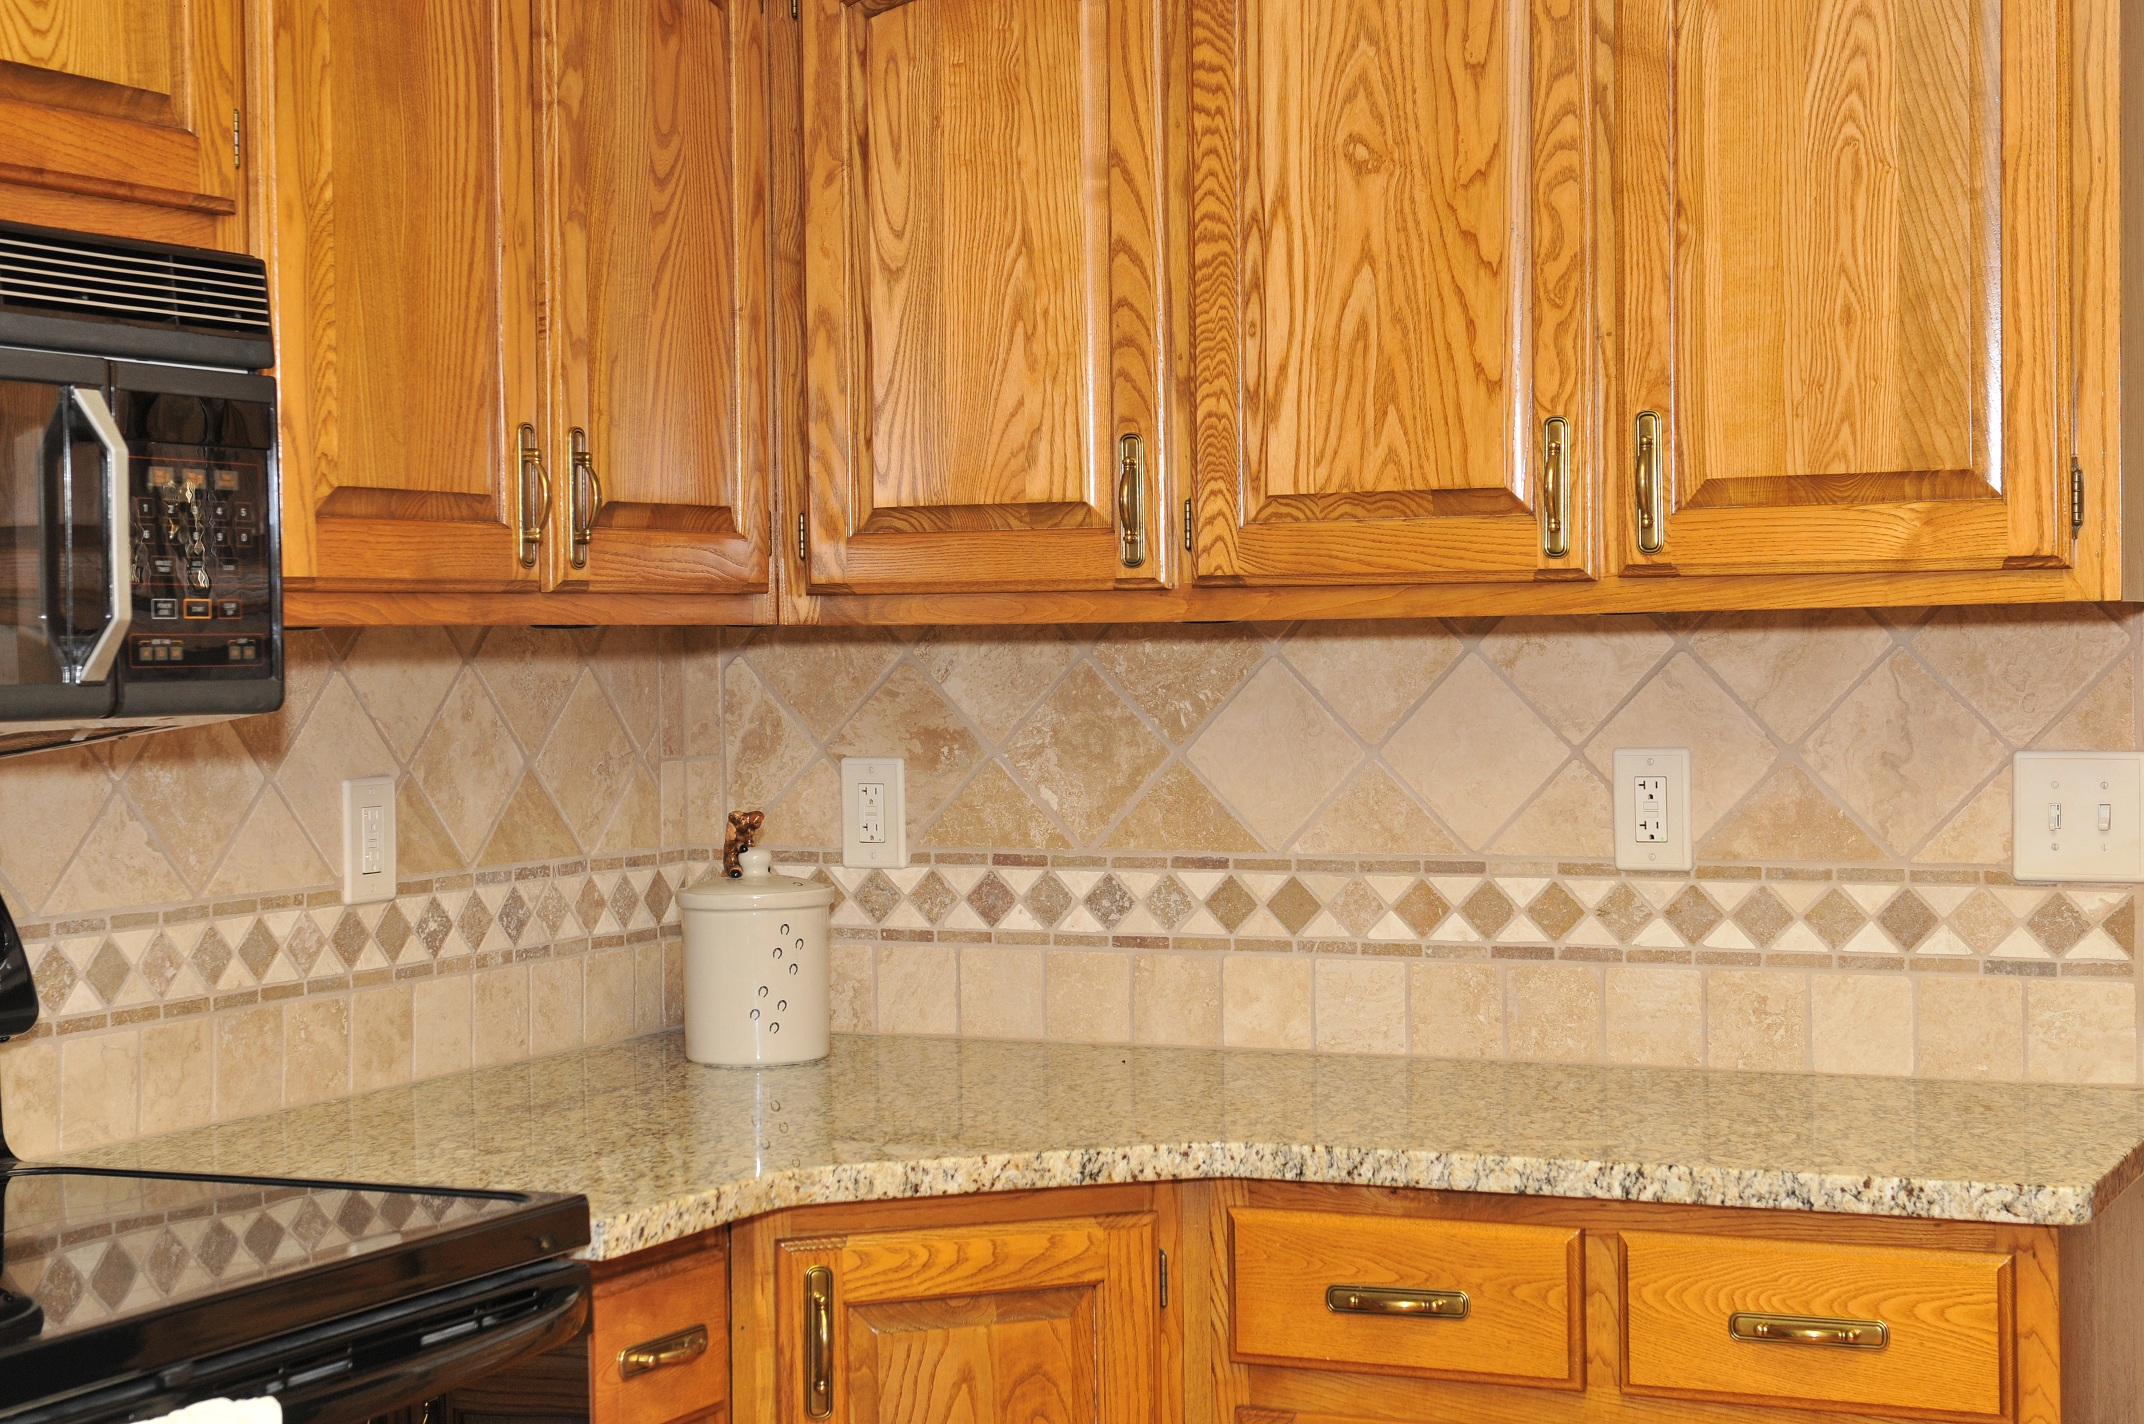 kitchen tile backsplash photo gallery joy studio design kitchen backsplash designs photo gallery joy studio